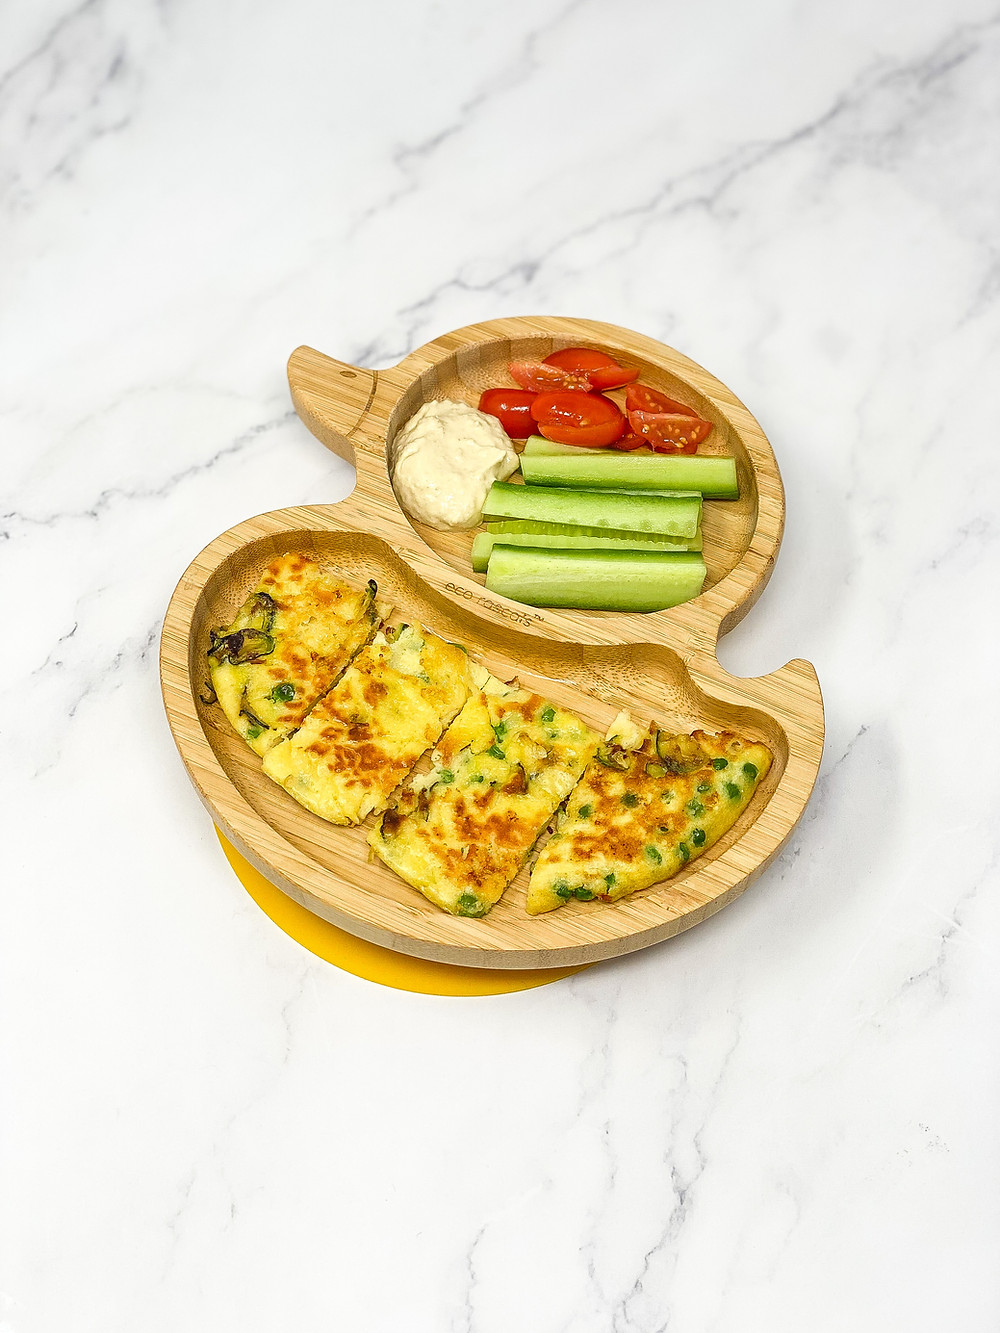 COURGETTE & PEAS OMELETTE served in ecorascals plate